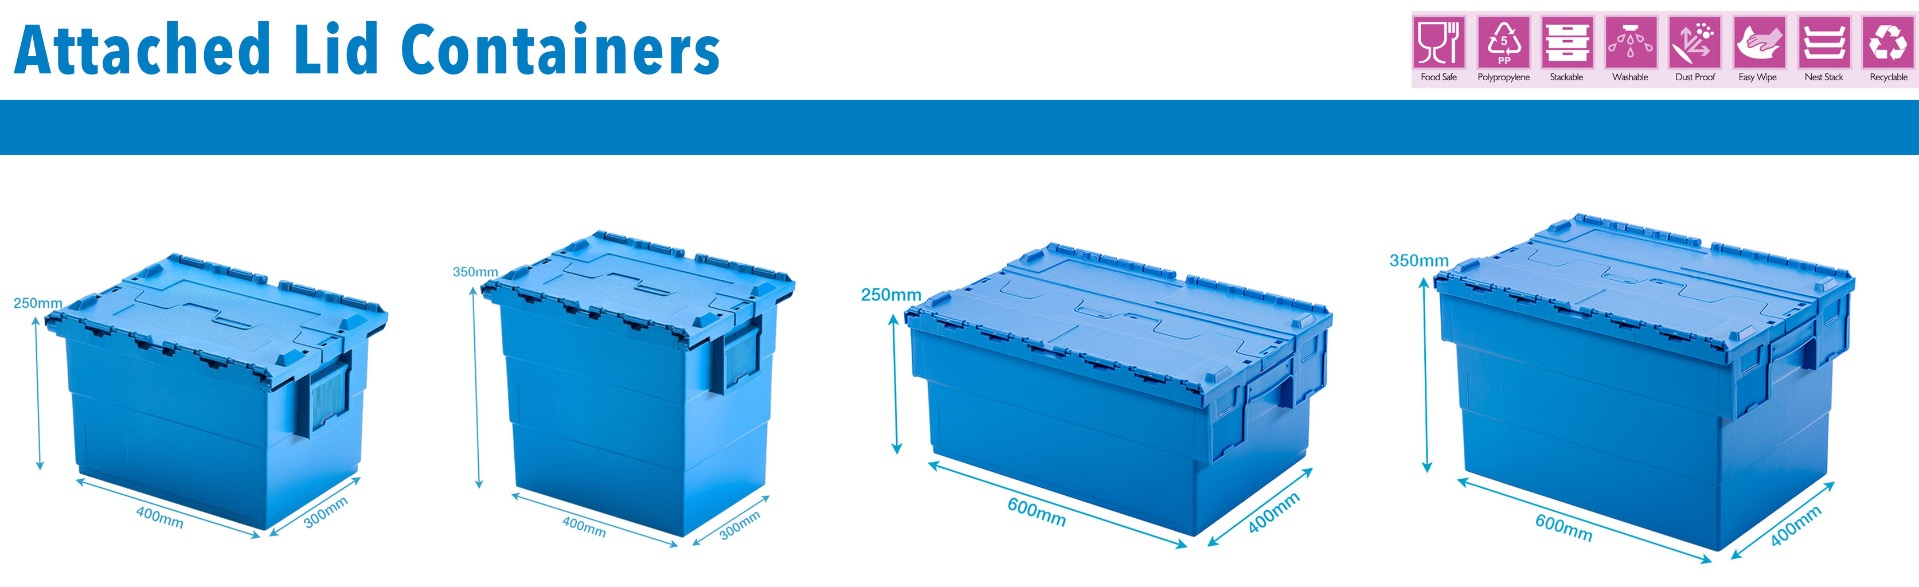 Blue Attached Lid Containers